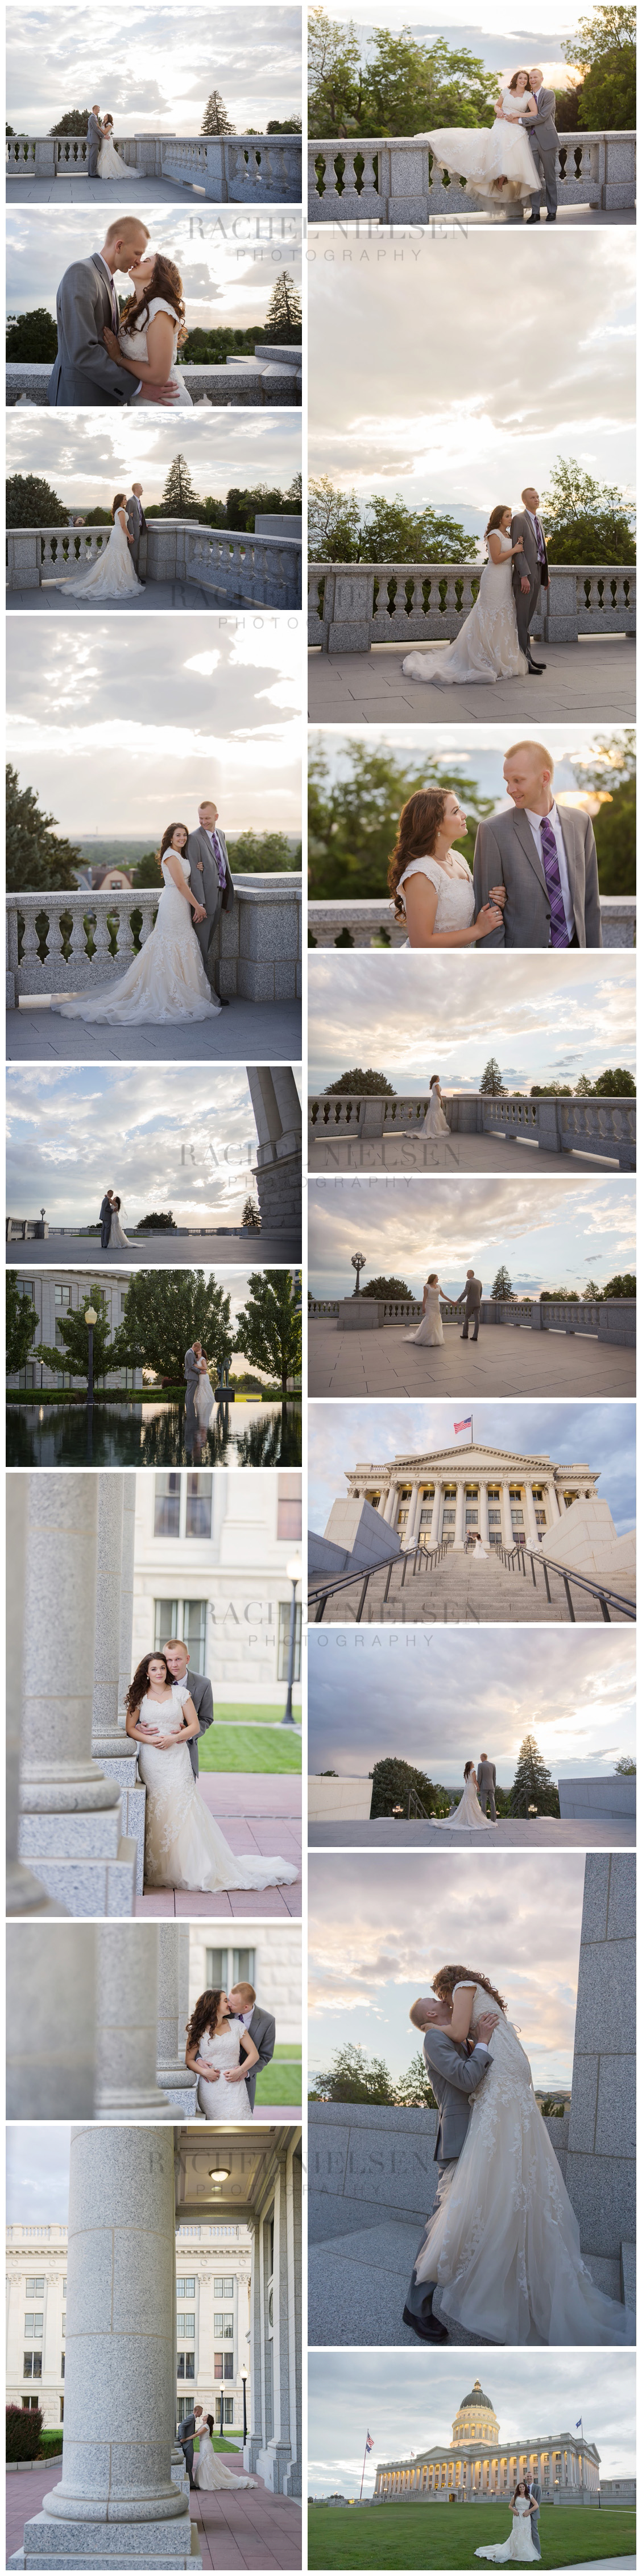 Kylee and Matt Bride and Groom photos - Salt Lake City Capitolw